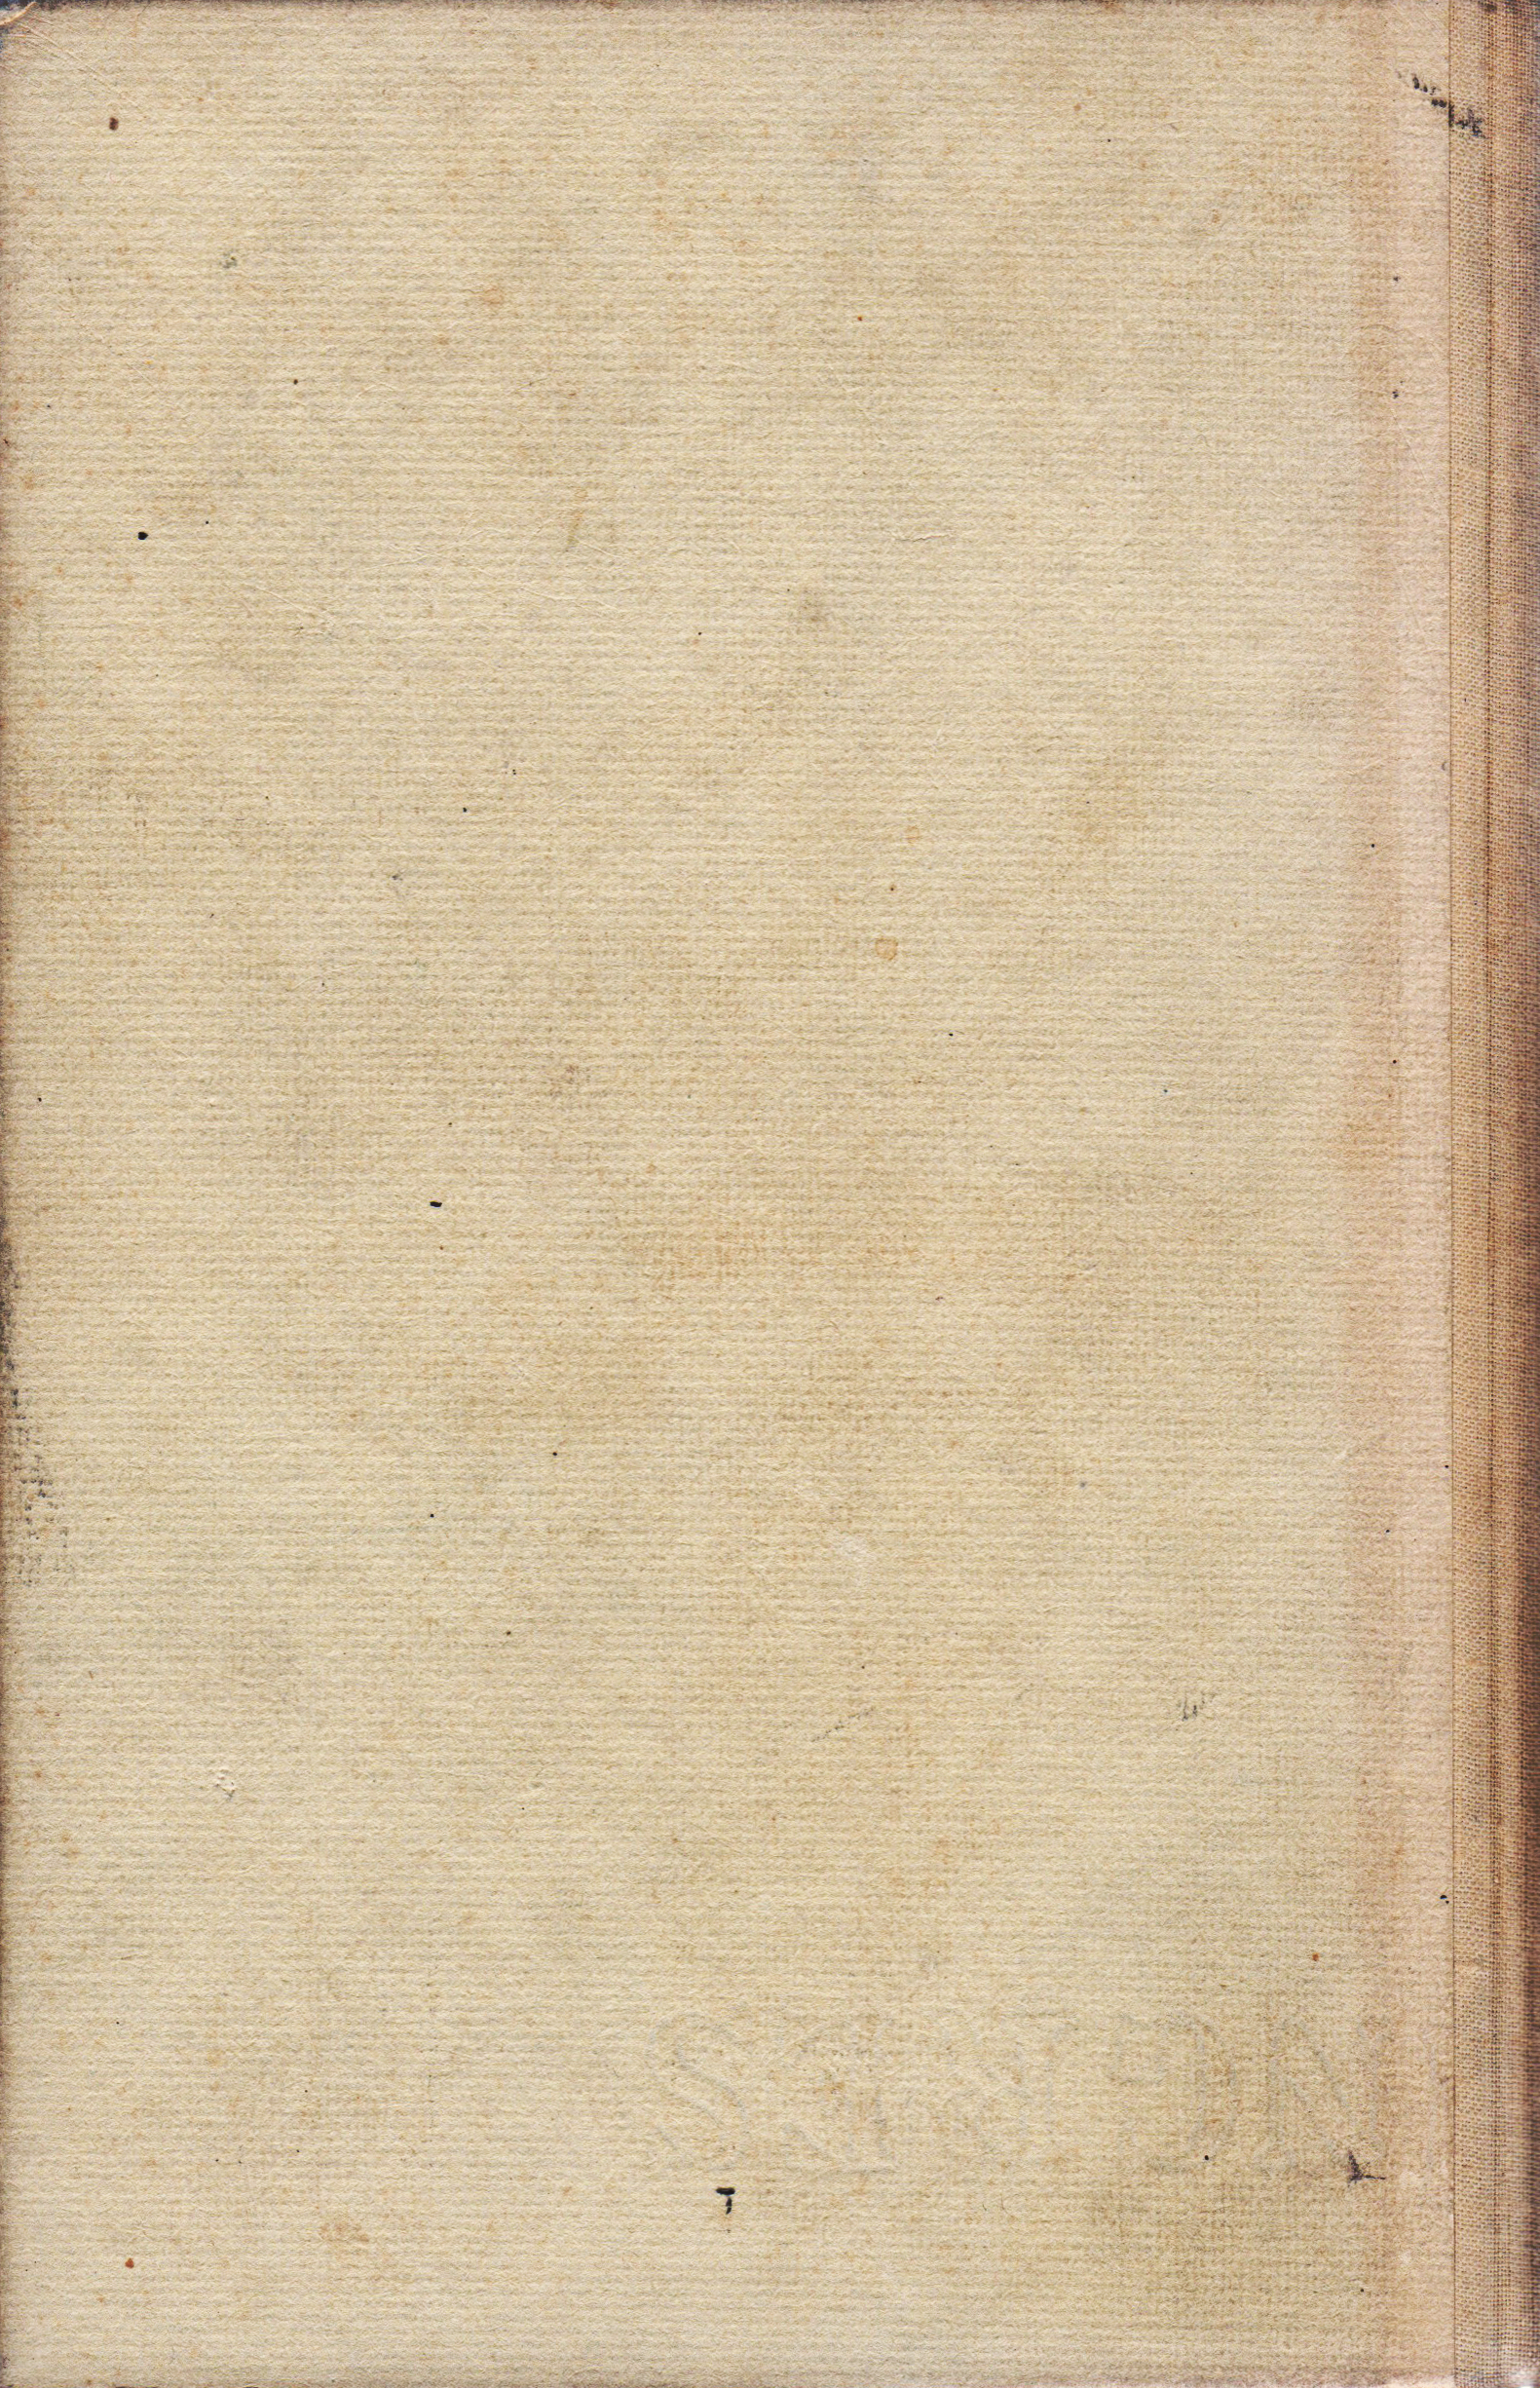 Book Cover Design Texture : Free vintage book cover textures texture l t